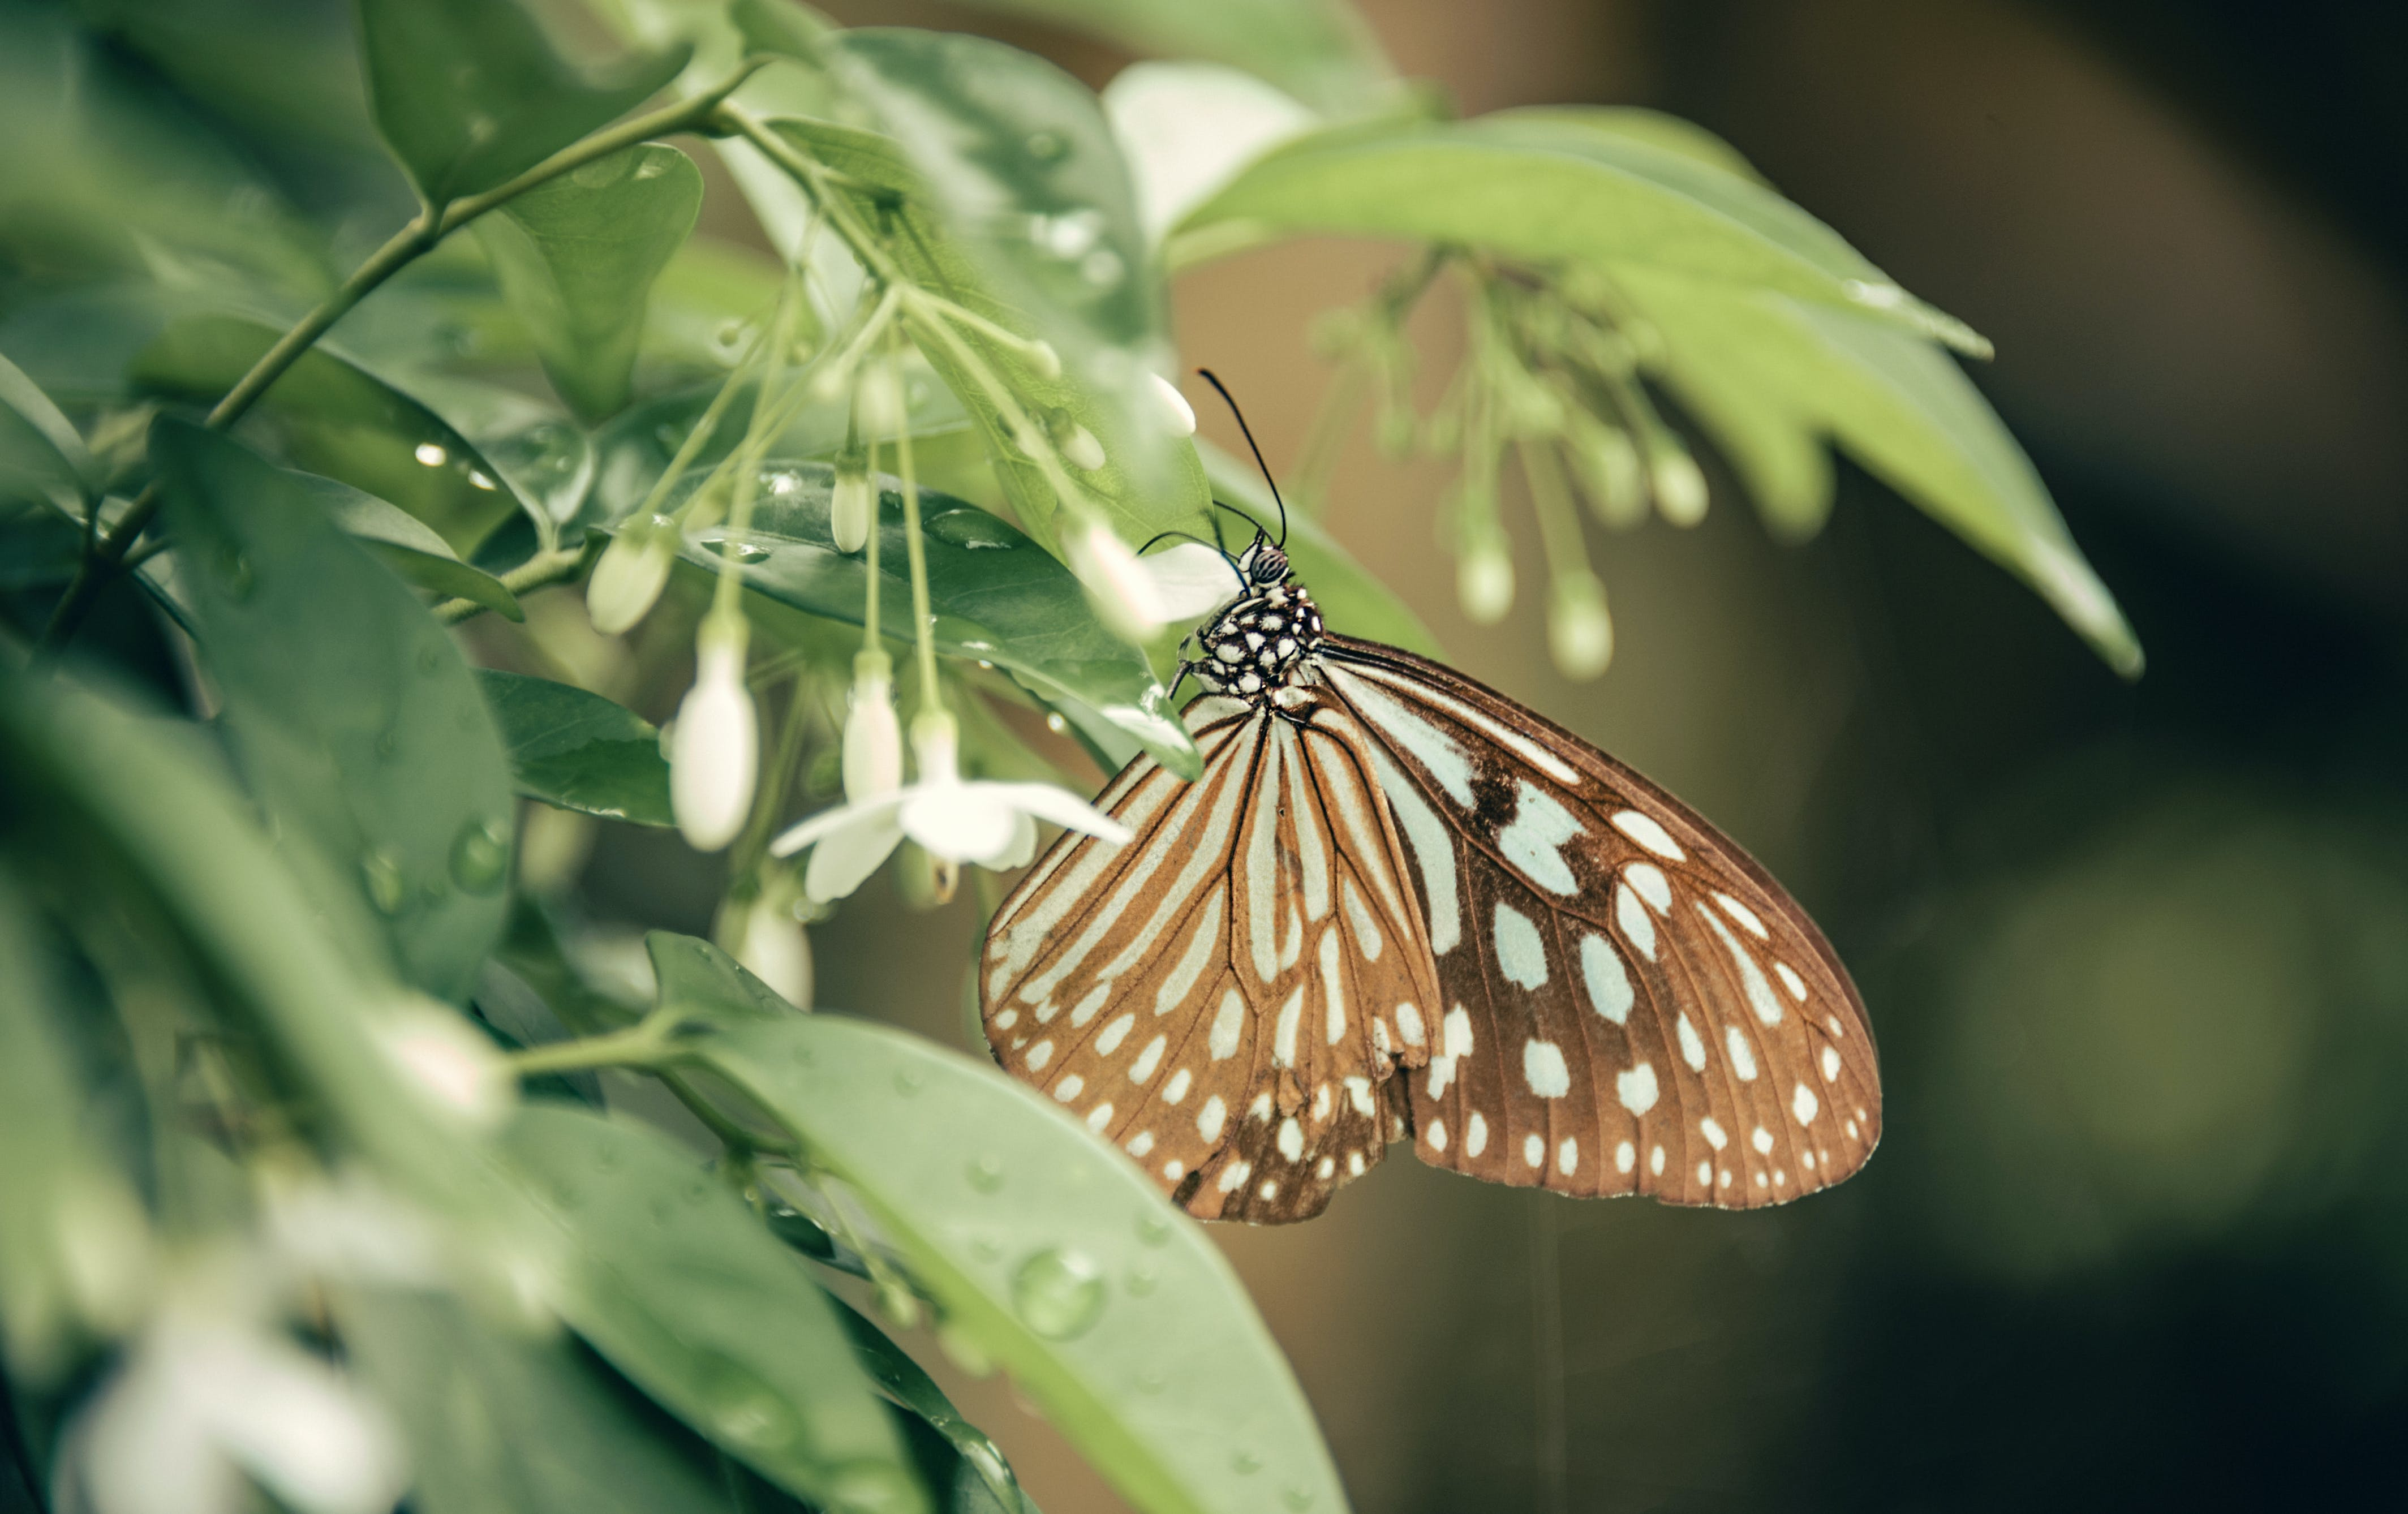 Brown And White Butterfly Perched On White Petaled Flower